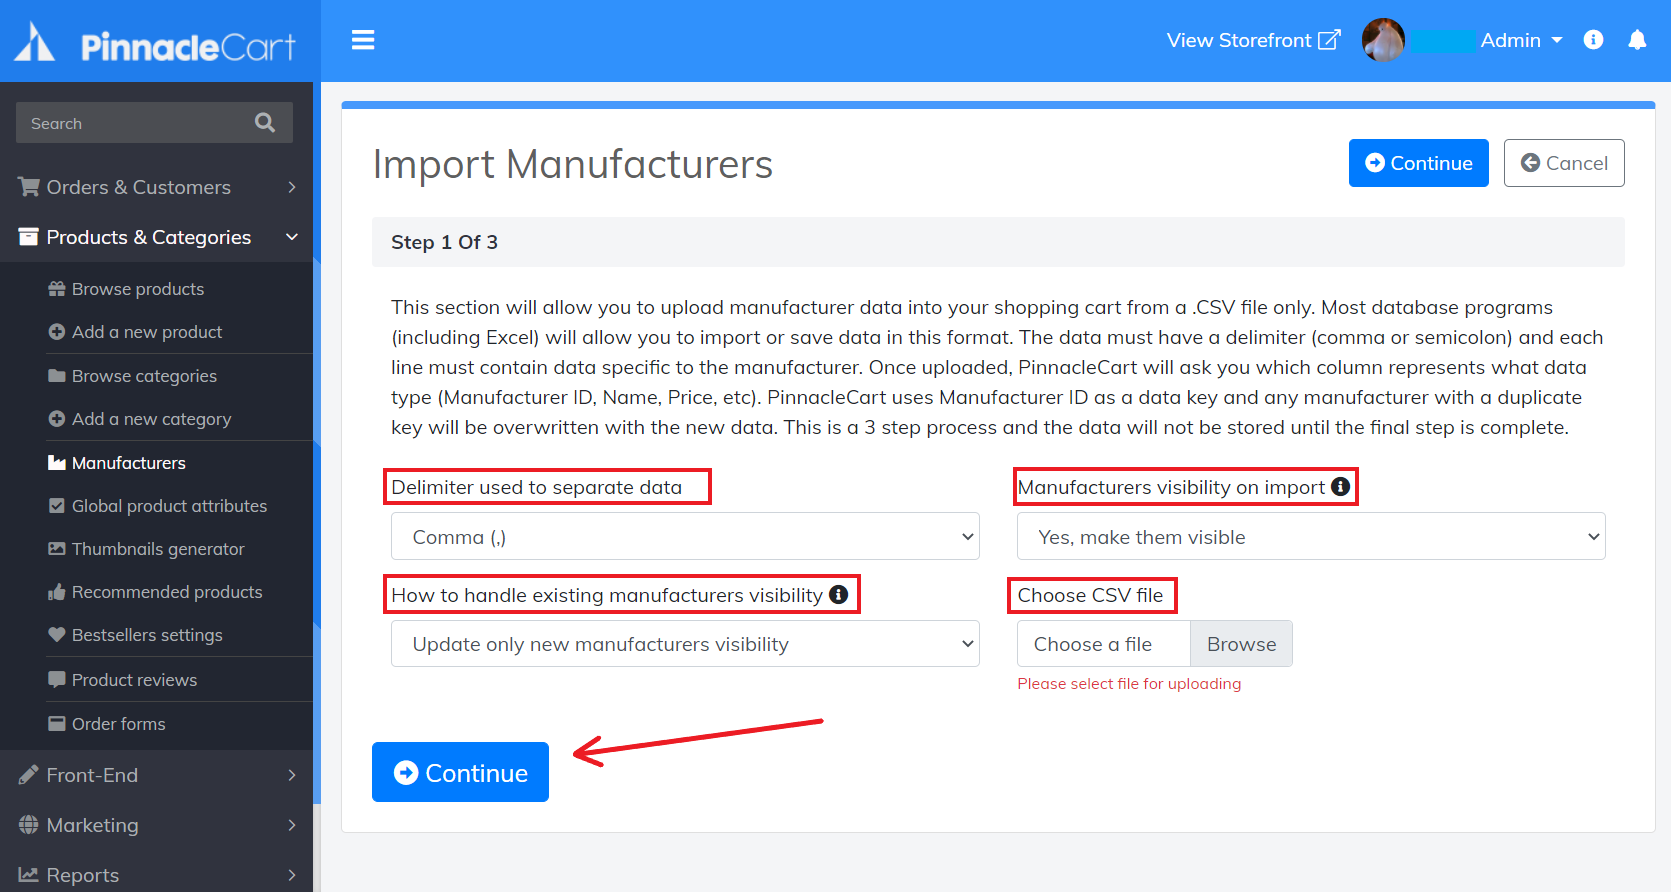 import-manufacturers-step1